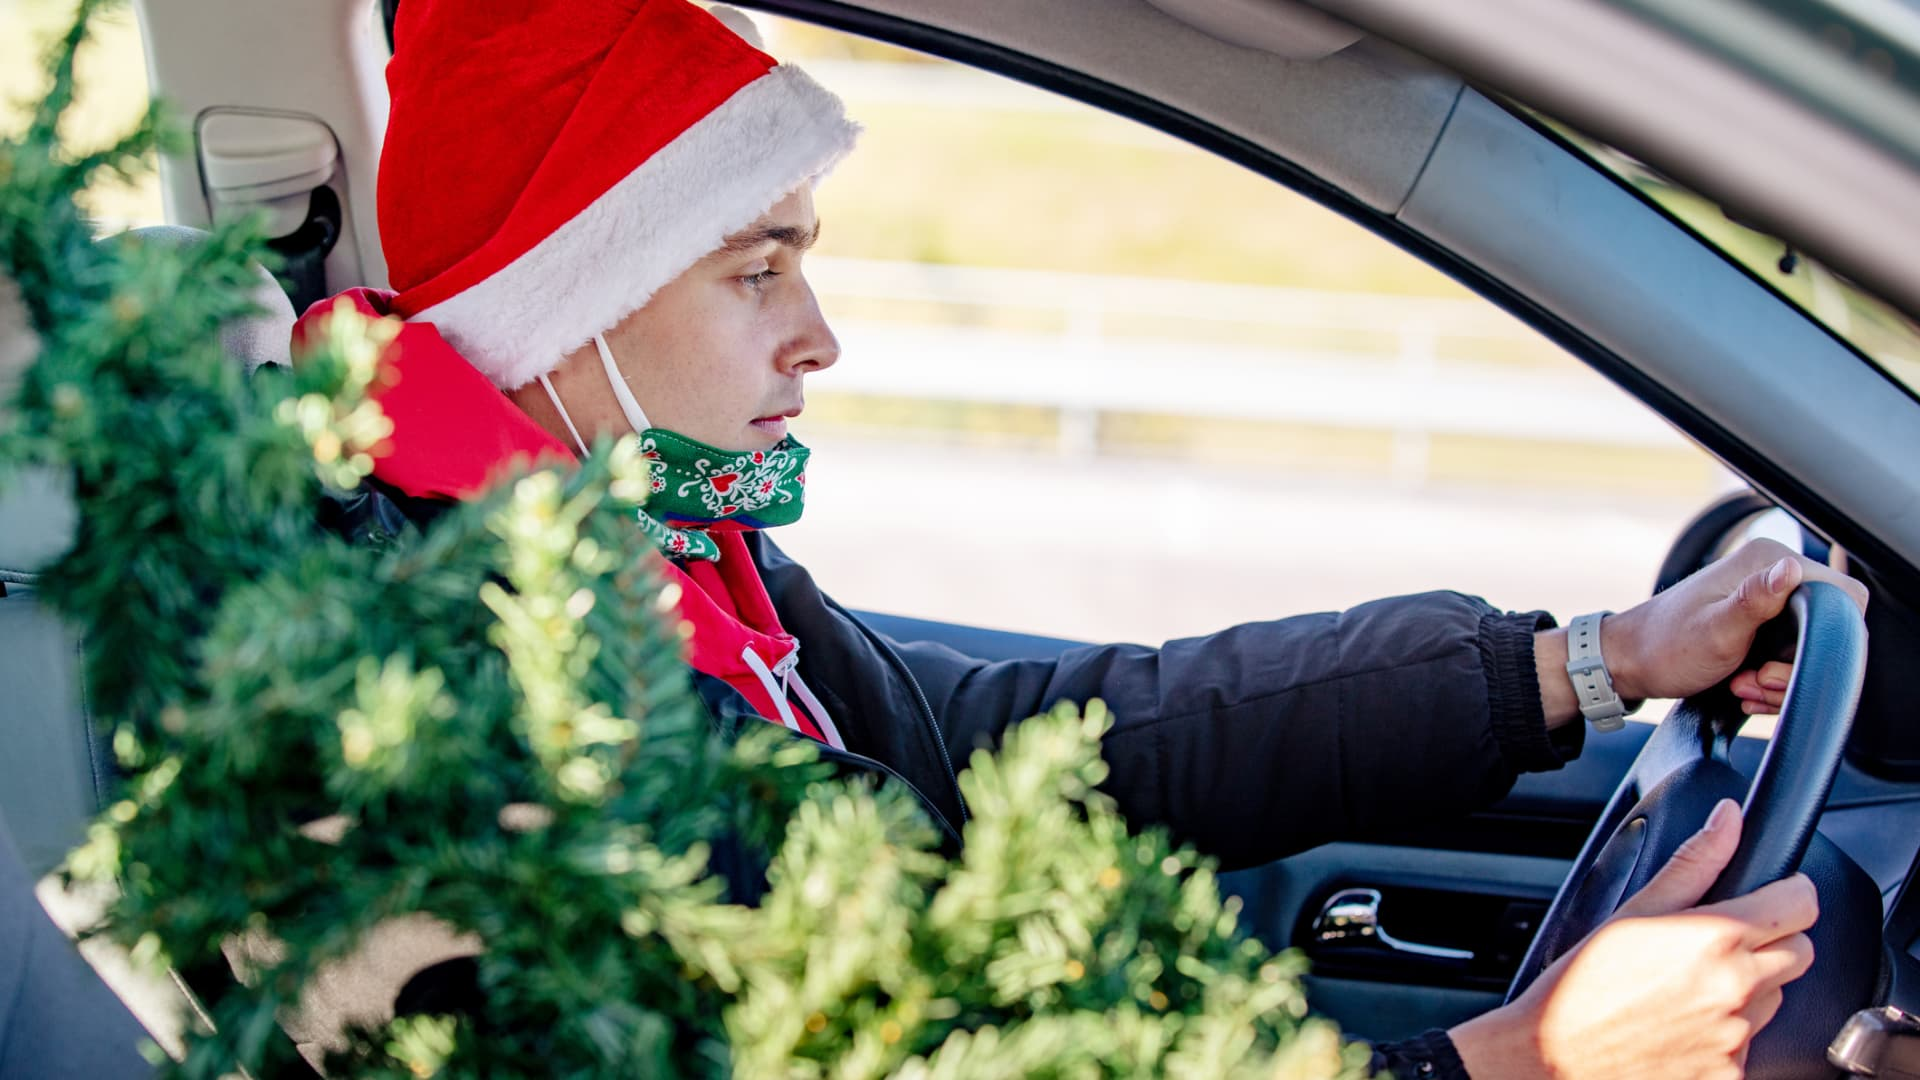 While flying is considered fairly safe, driving is recommended this holiday season.